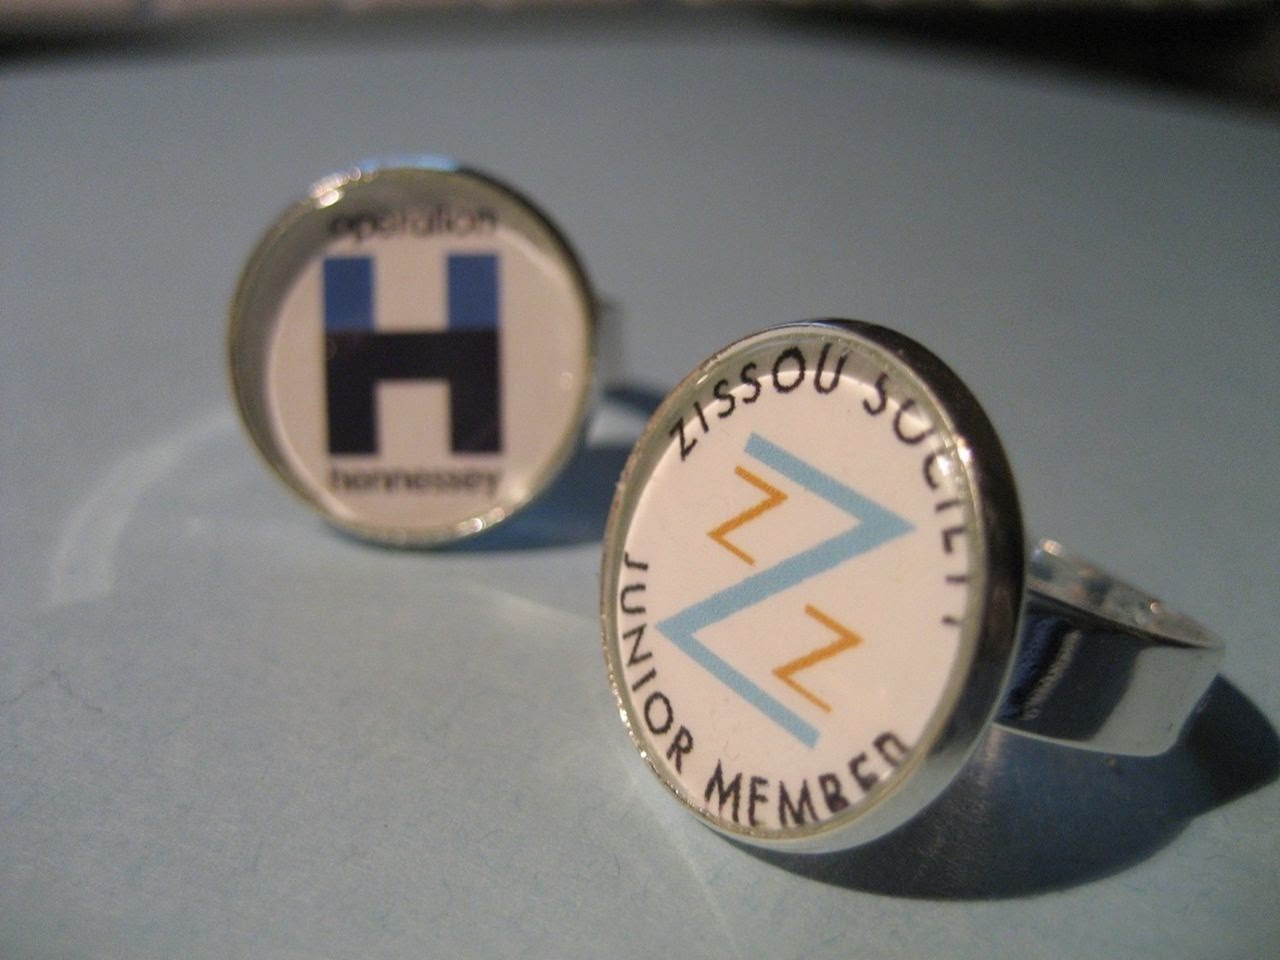 hennessey and zissou rings